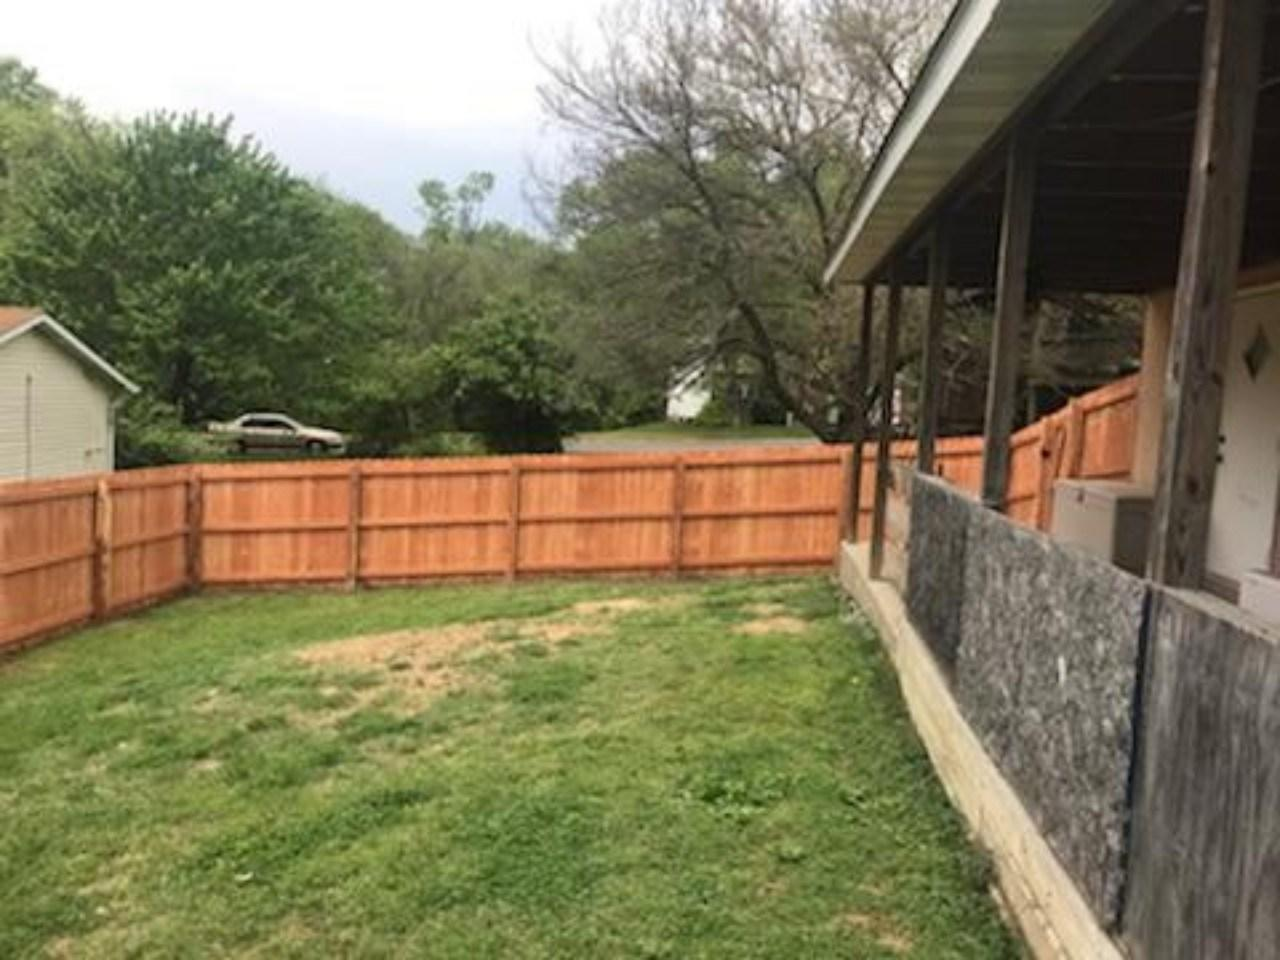 Prestained Douglas Fir Privacy Fencing in Bethalto, IL - After Photo